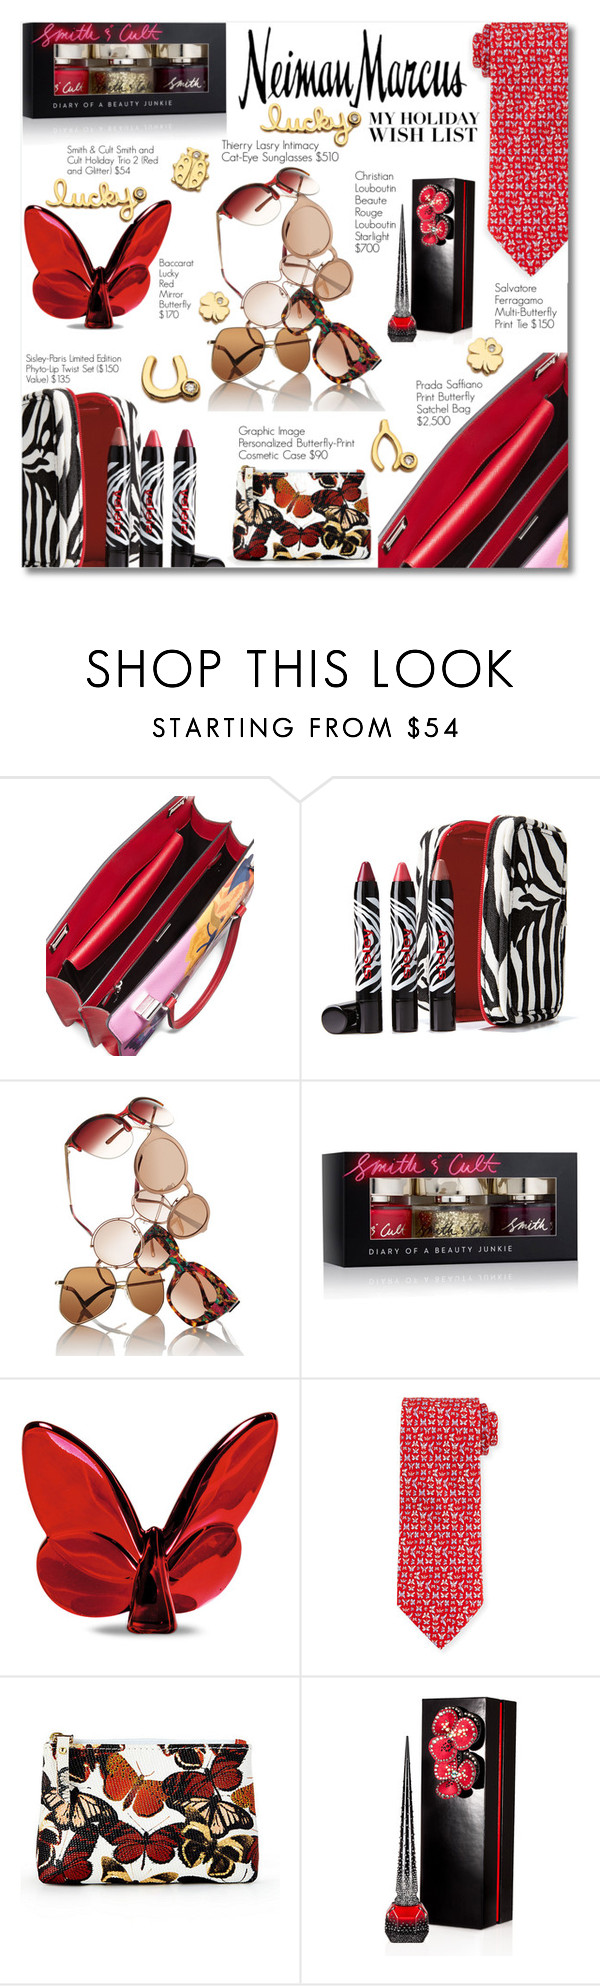 """""""The Holiday Wish List With Neiman Marcus: Contest Entry"""" by rivlyb ❤ liked on Polyvore featuring Prada, Sisley Paris, Thierry Lasry, Smith & Cult, Baccarat, Salvatore Ferragamo, Graphic Image, Neiman Marcus, Christian Louboutin and Sydney Evan"""